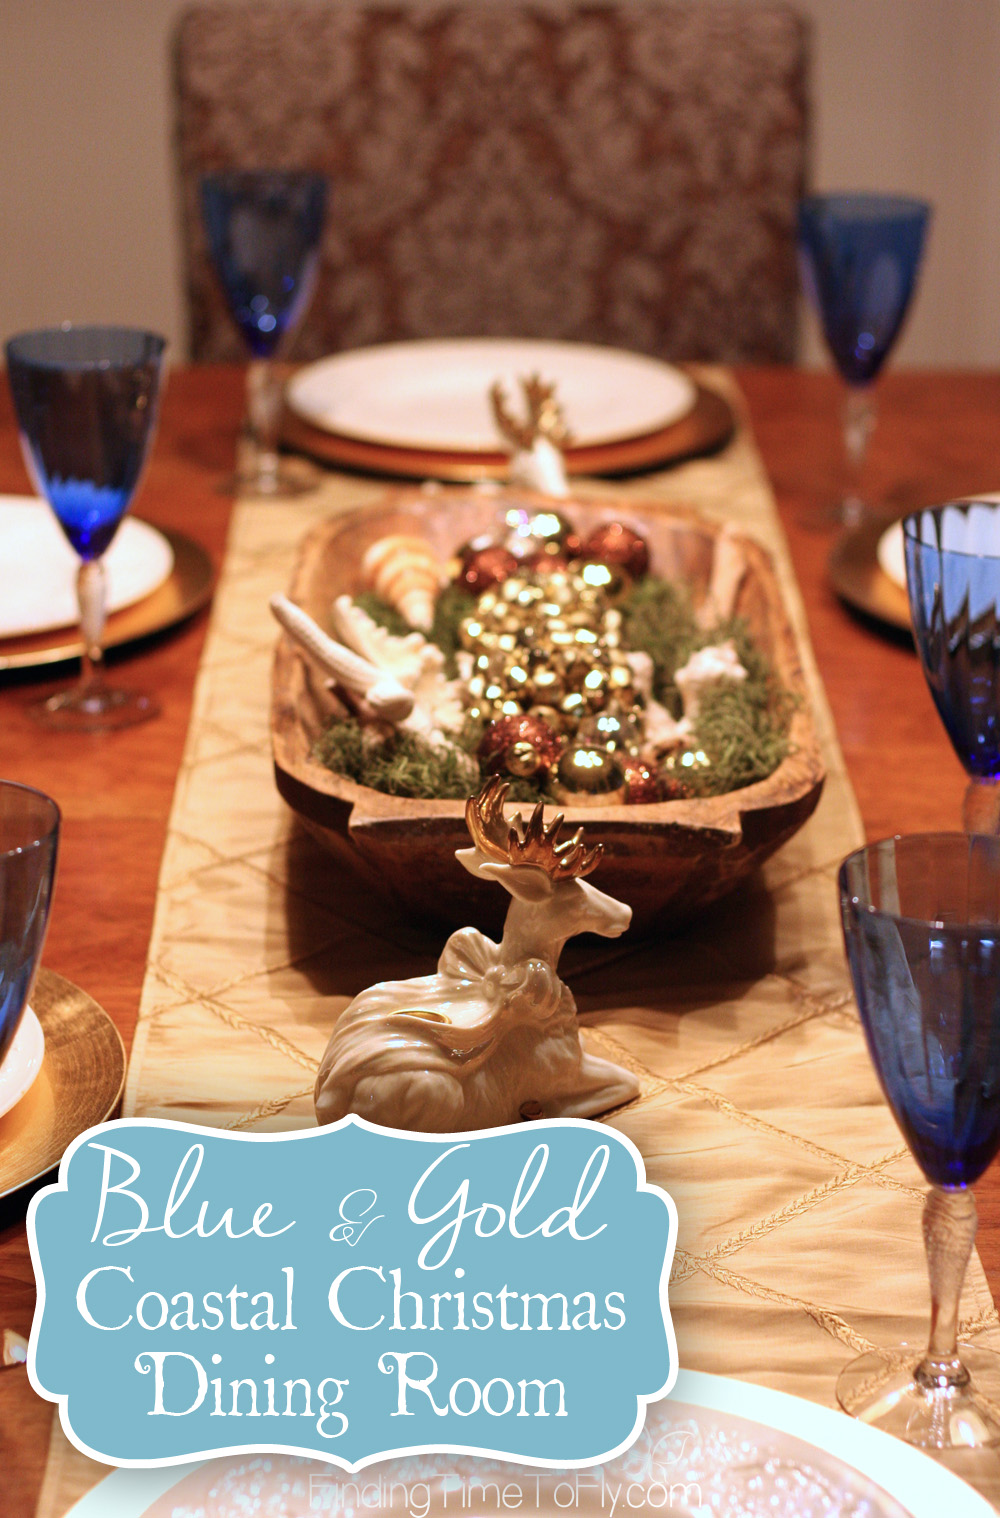 Blue and Gold Coastal Christmas Dining Room